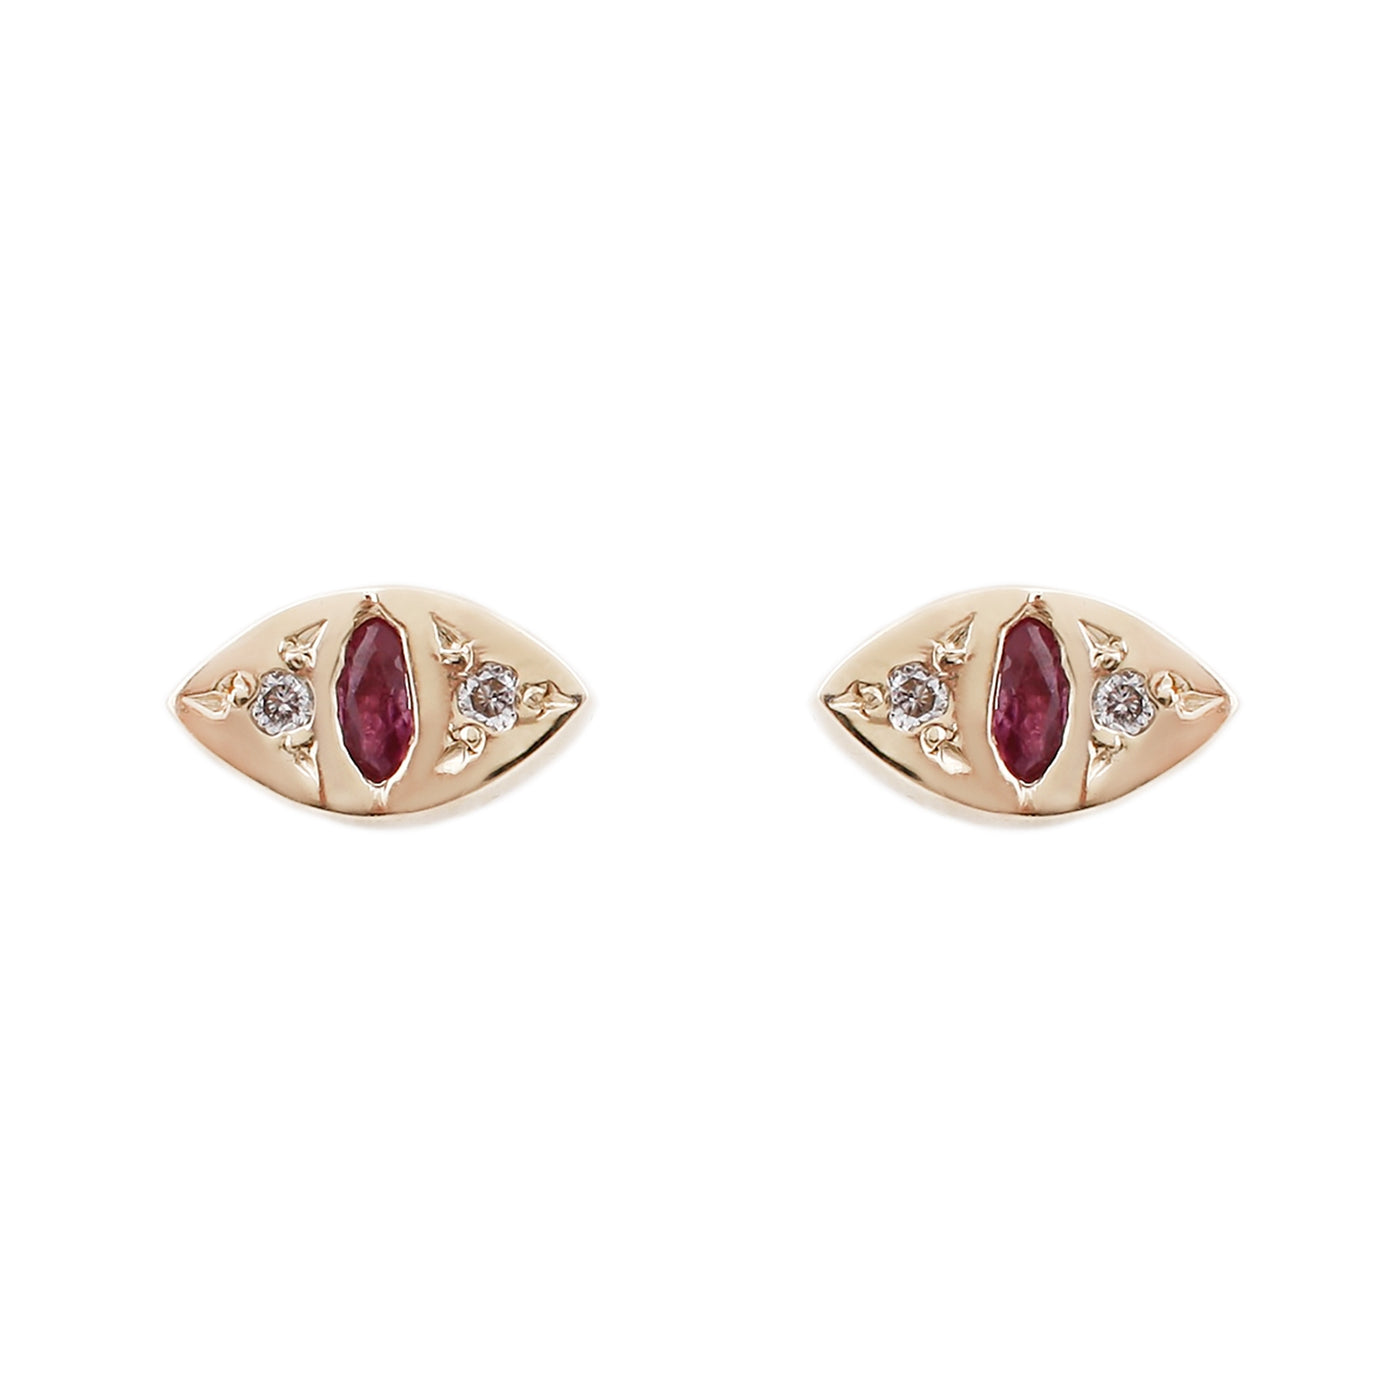 Scosha Edwardian Eye Studs Earrings